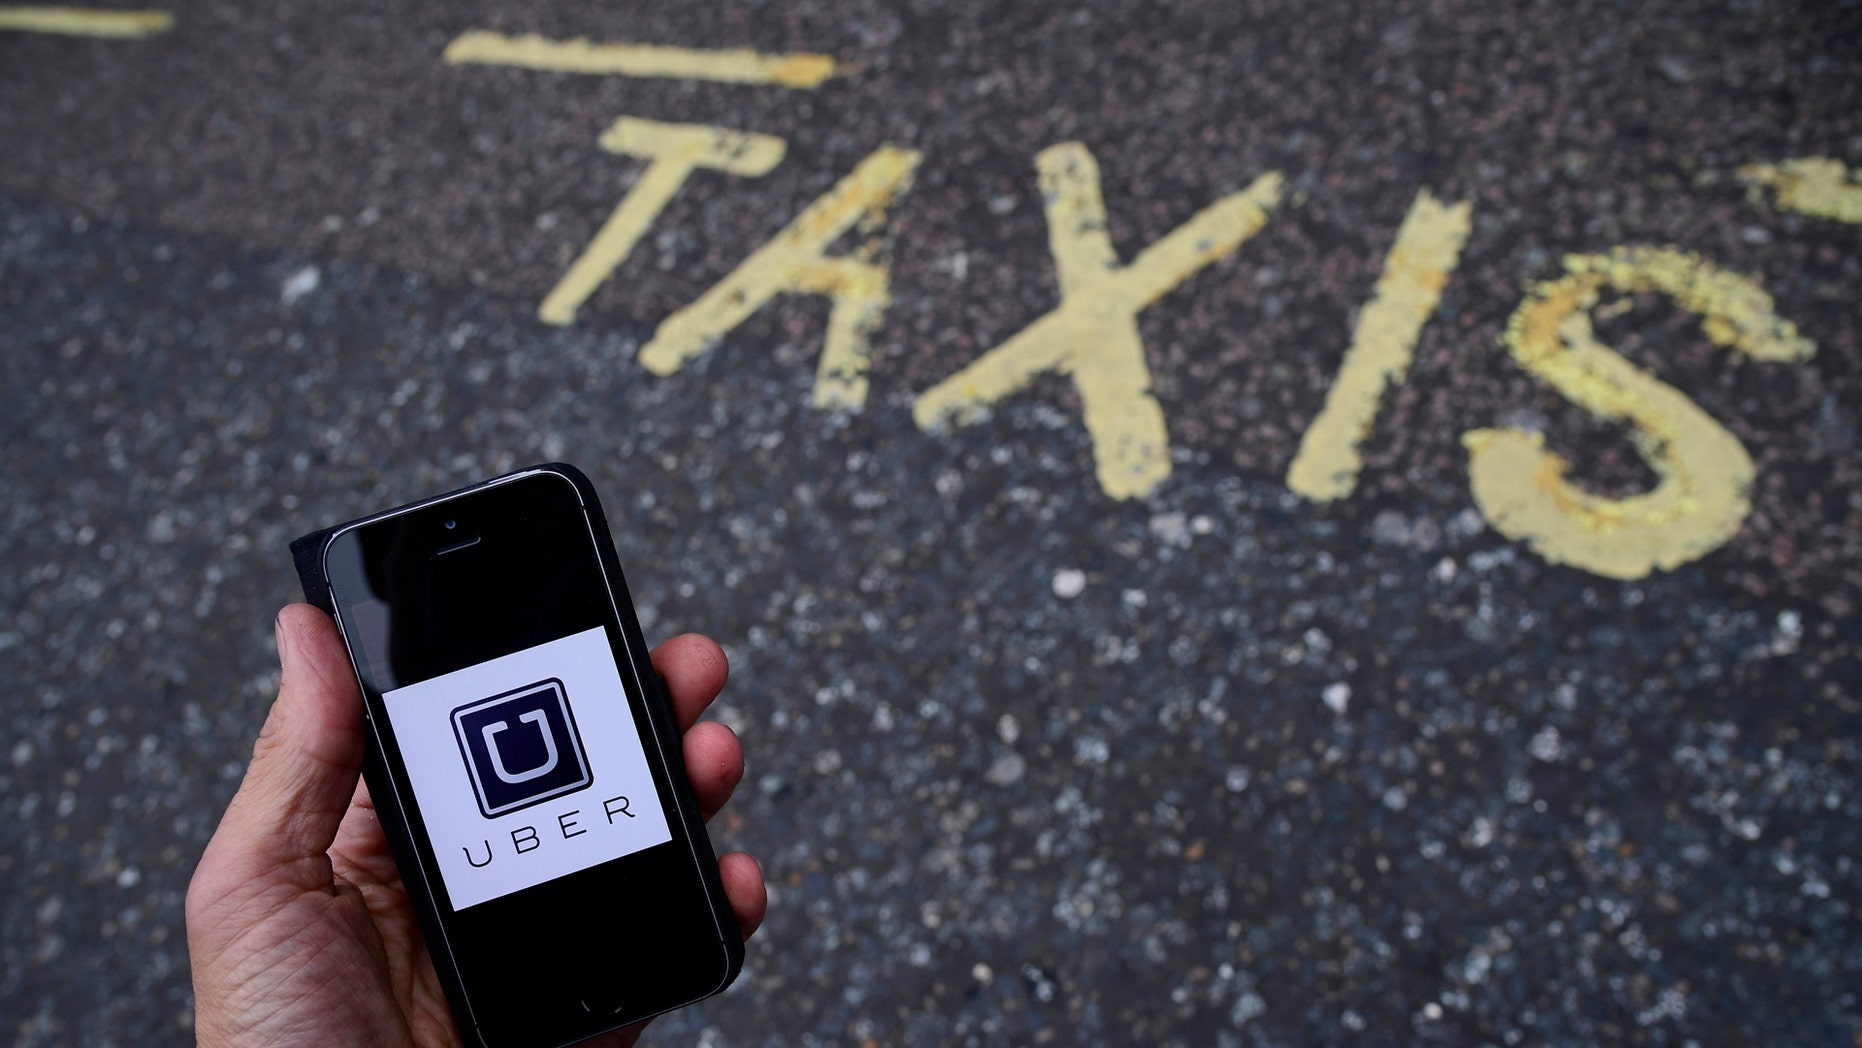 File photo: A photo illustration shows the Uber app logo displayed on a mobile telephone, as it is held up for a posed photograph in central London, Britain October 28, 2016. (REUTERS/Toby Melville)